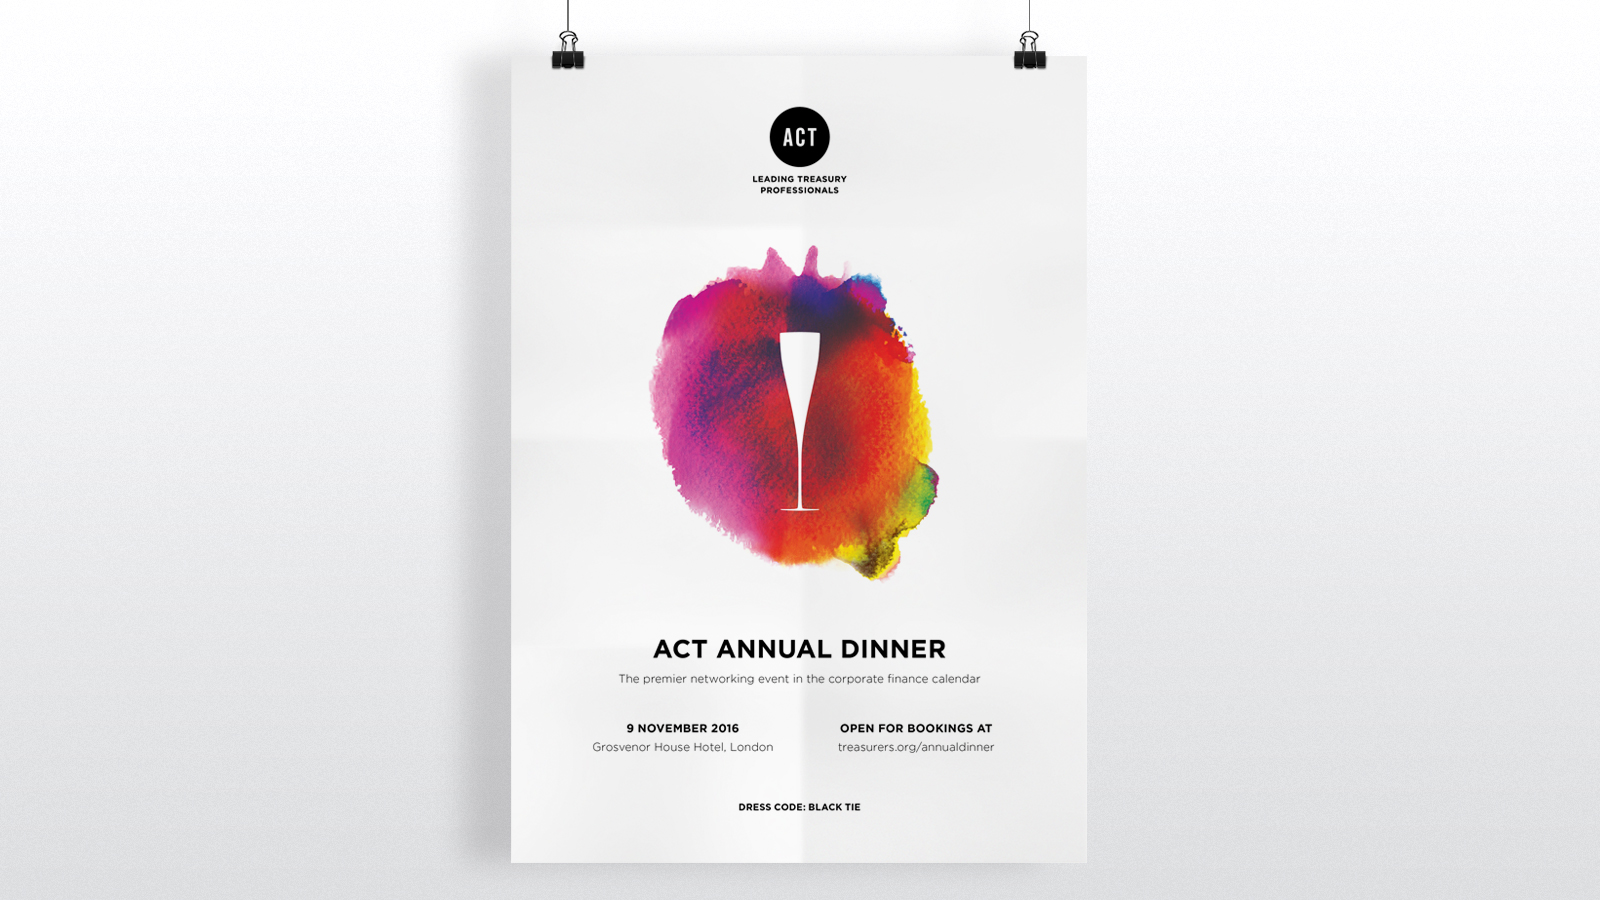 Association-of-Corporate-Treasurers-Annual-Dinner-2016-Invitation-Designed-By-ALSO-Agency